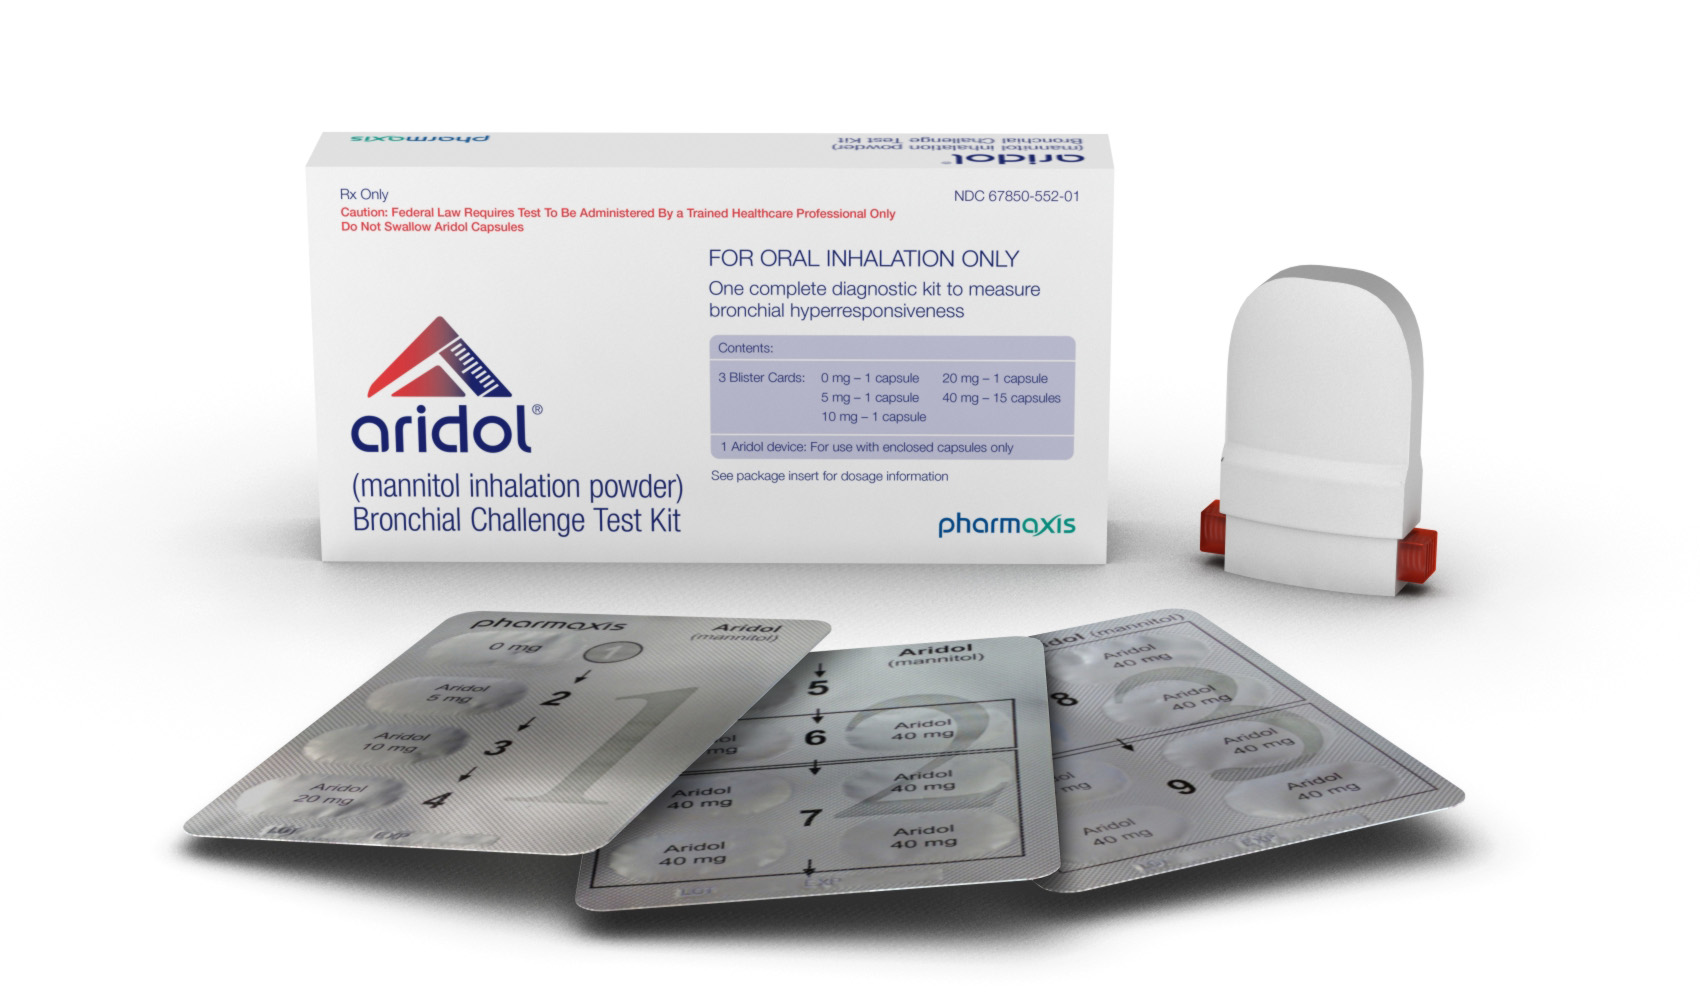 Aridol (mannitol inhalation powder) Bronchial Challenge Test Kit